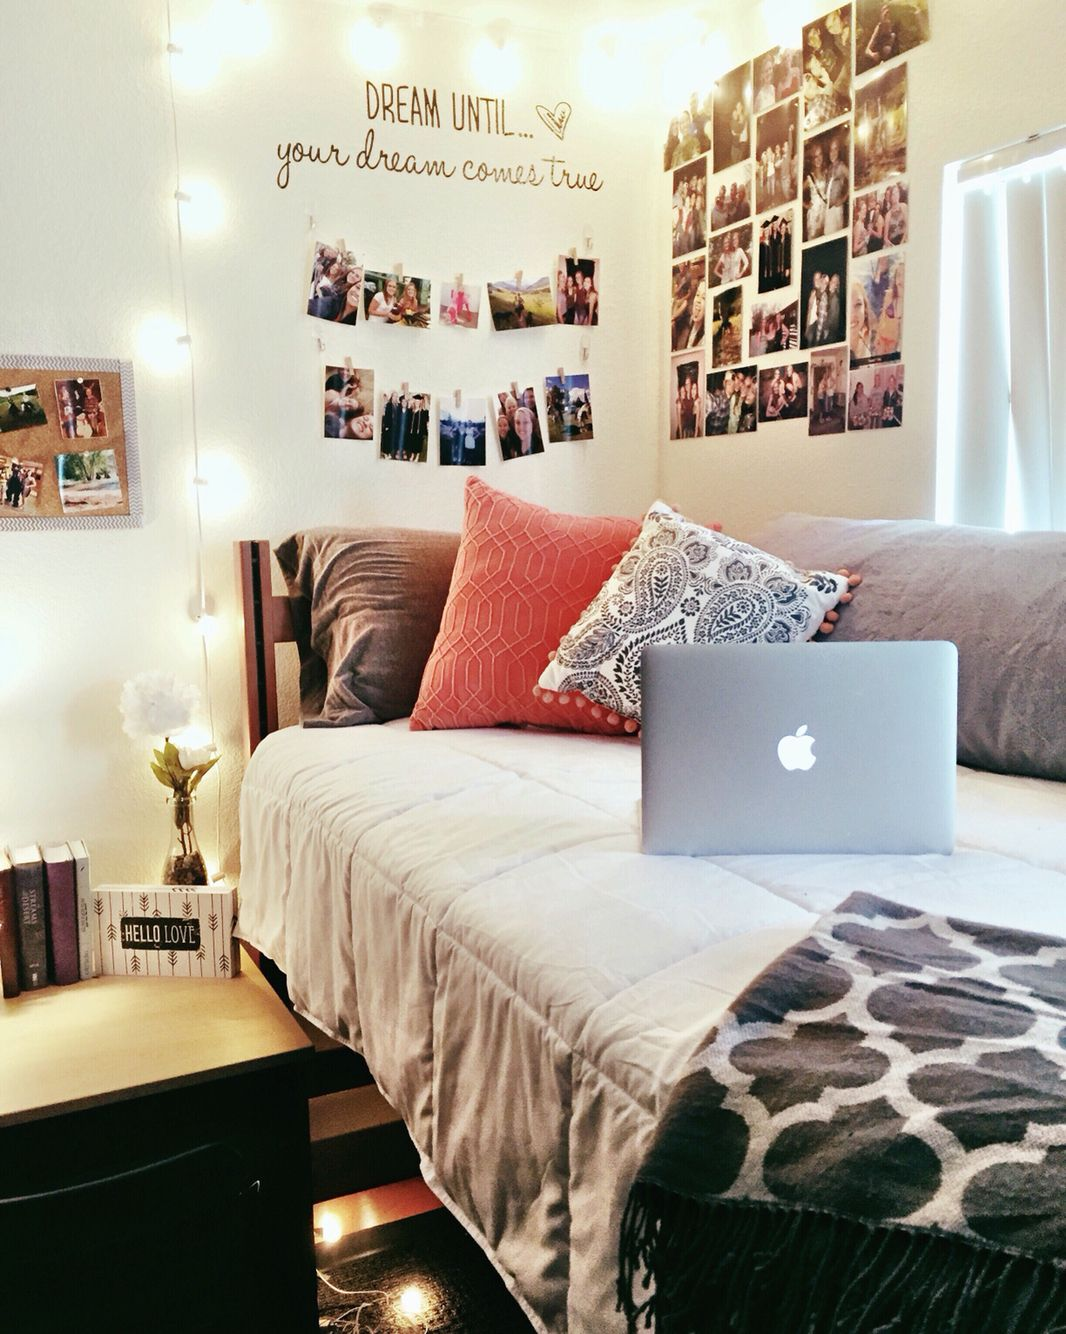 dorm room wall decor pinterest. dream rooms dorm room wall decor pinterest